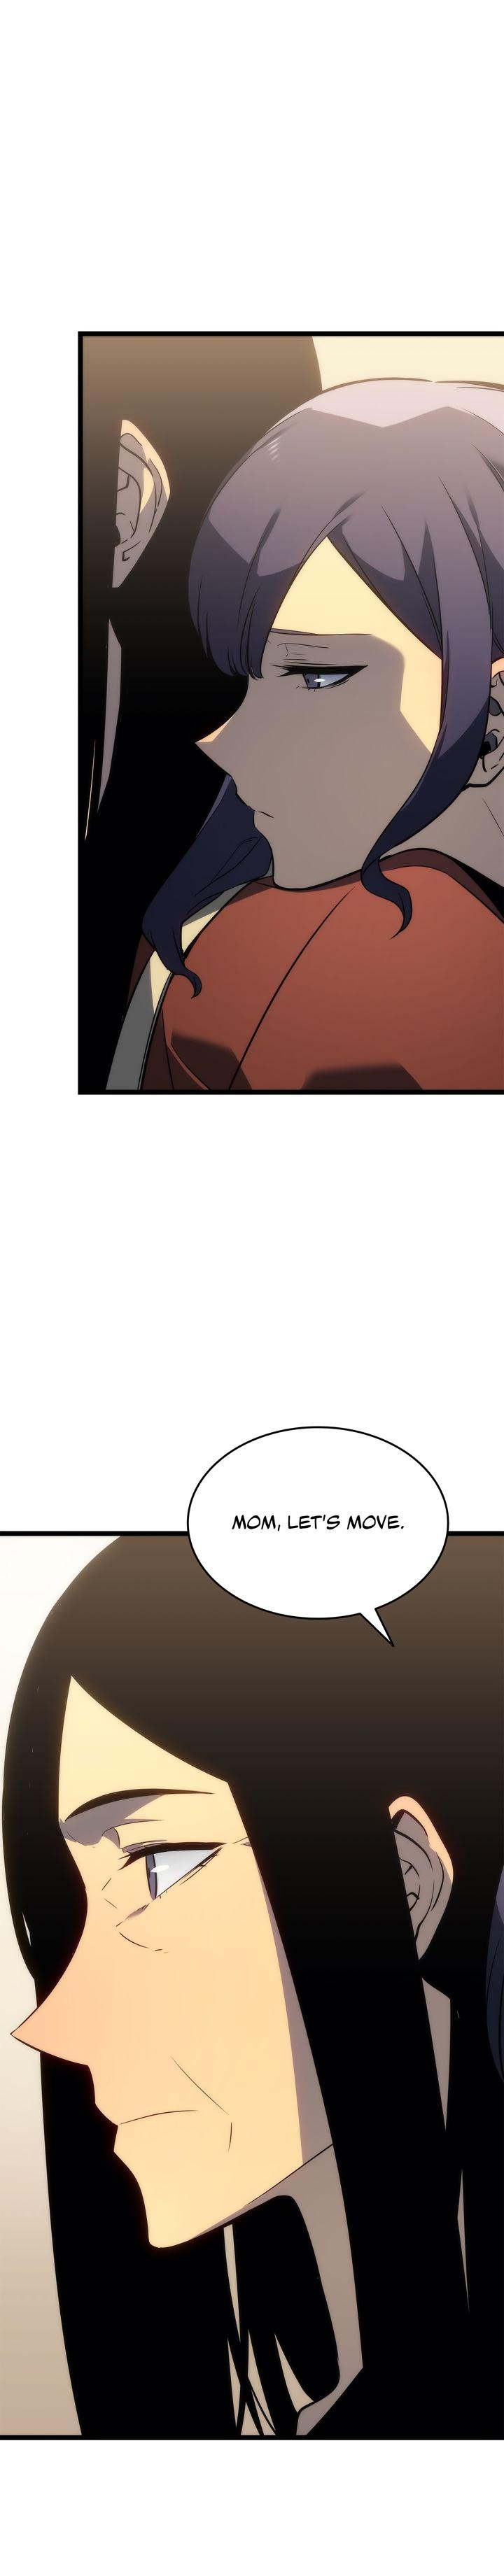 Solo Leveling Chapter 153 Page 4